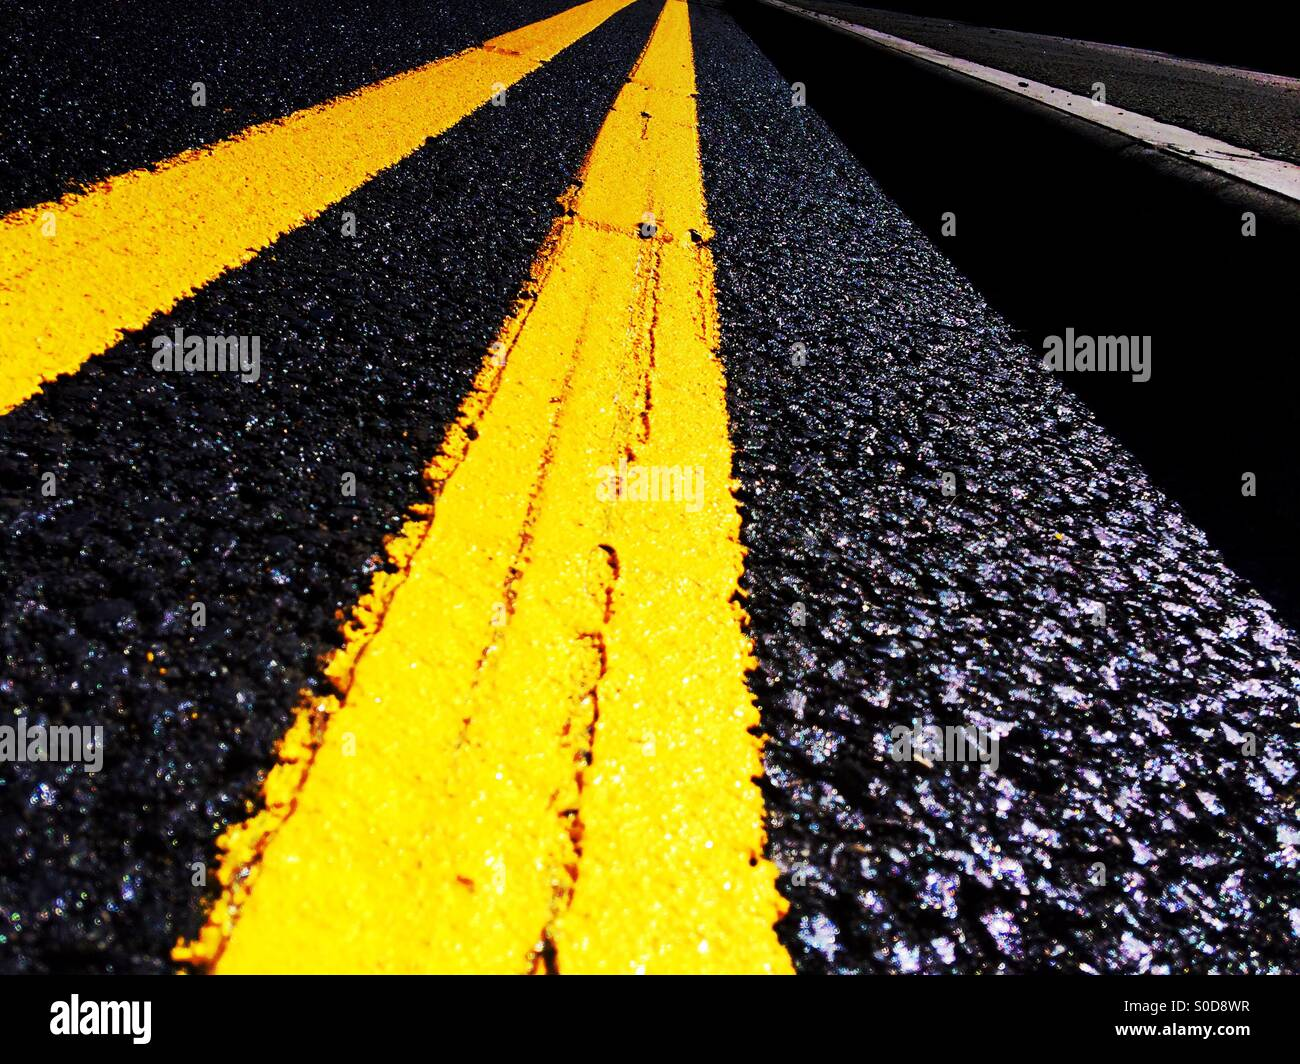 No Parking double yellow lines on a Tarmac road - Stock Image